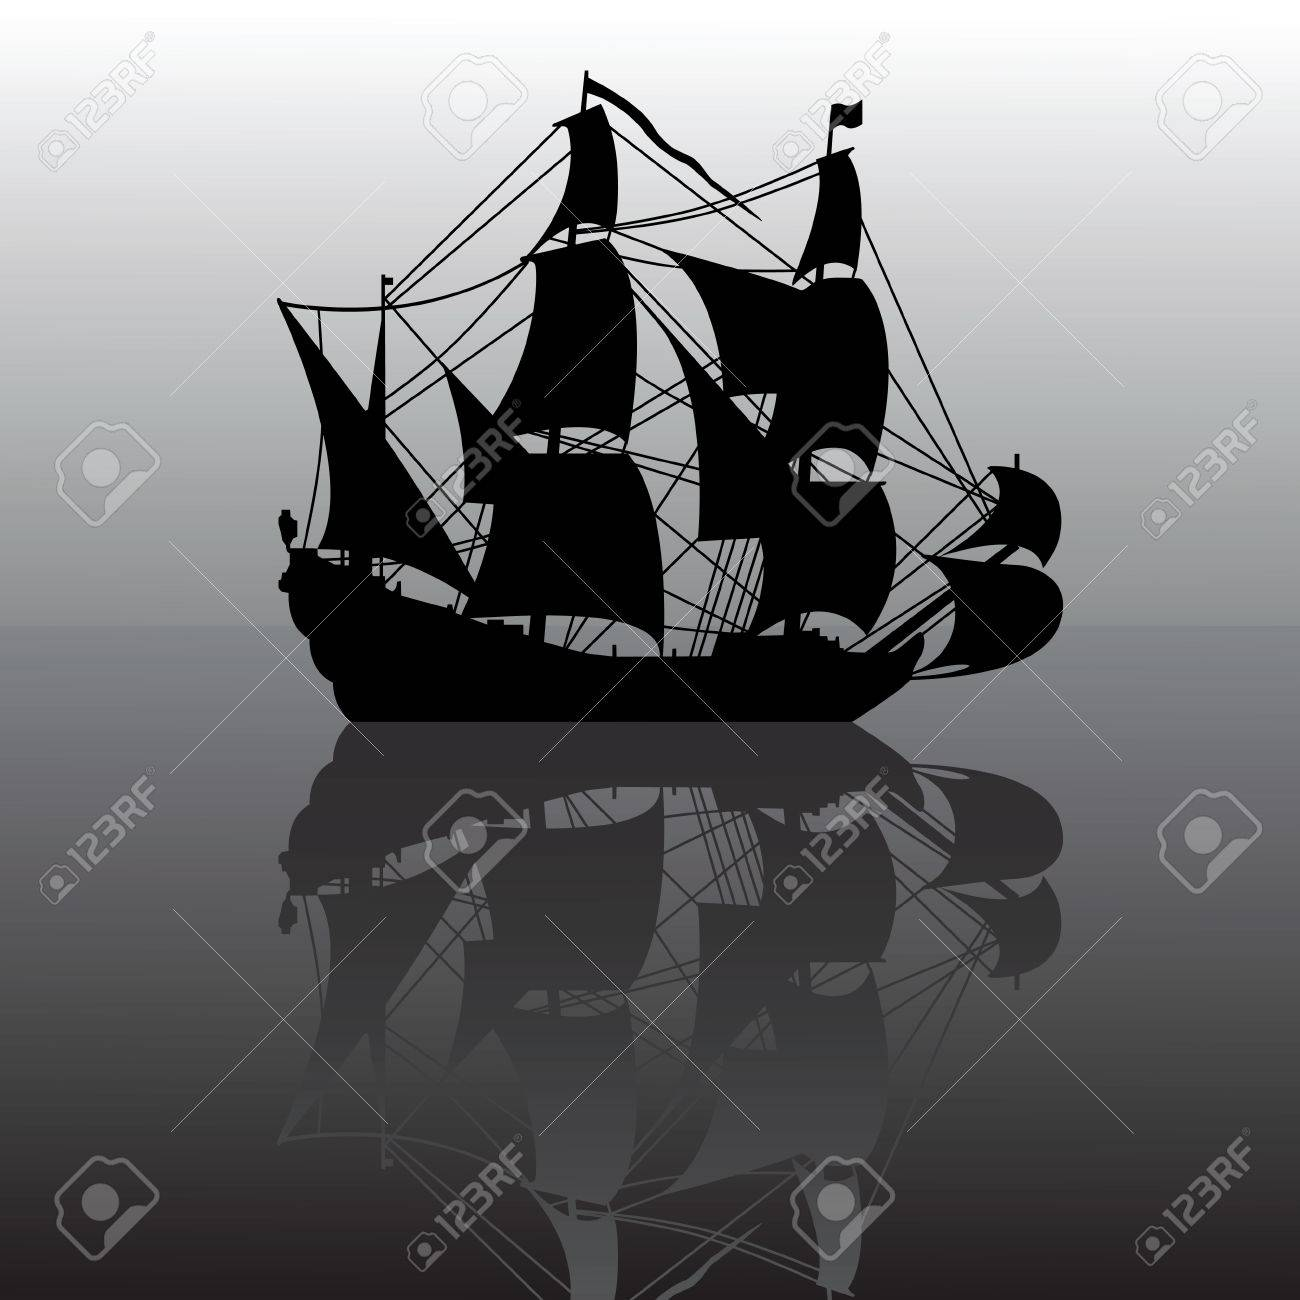 vector illustration of sailboat silhouette with reflection Stock Vector - 5654036